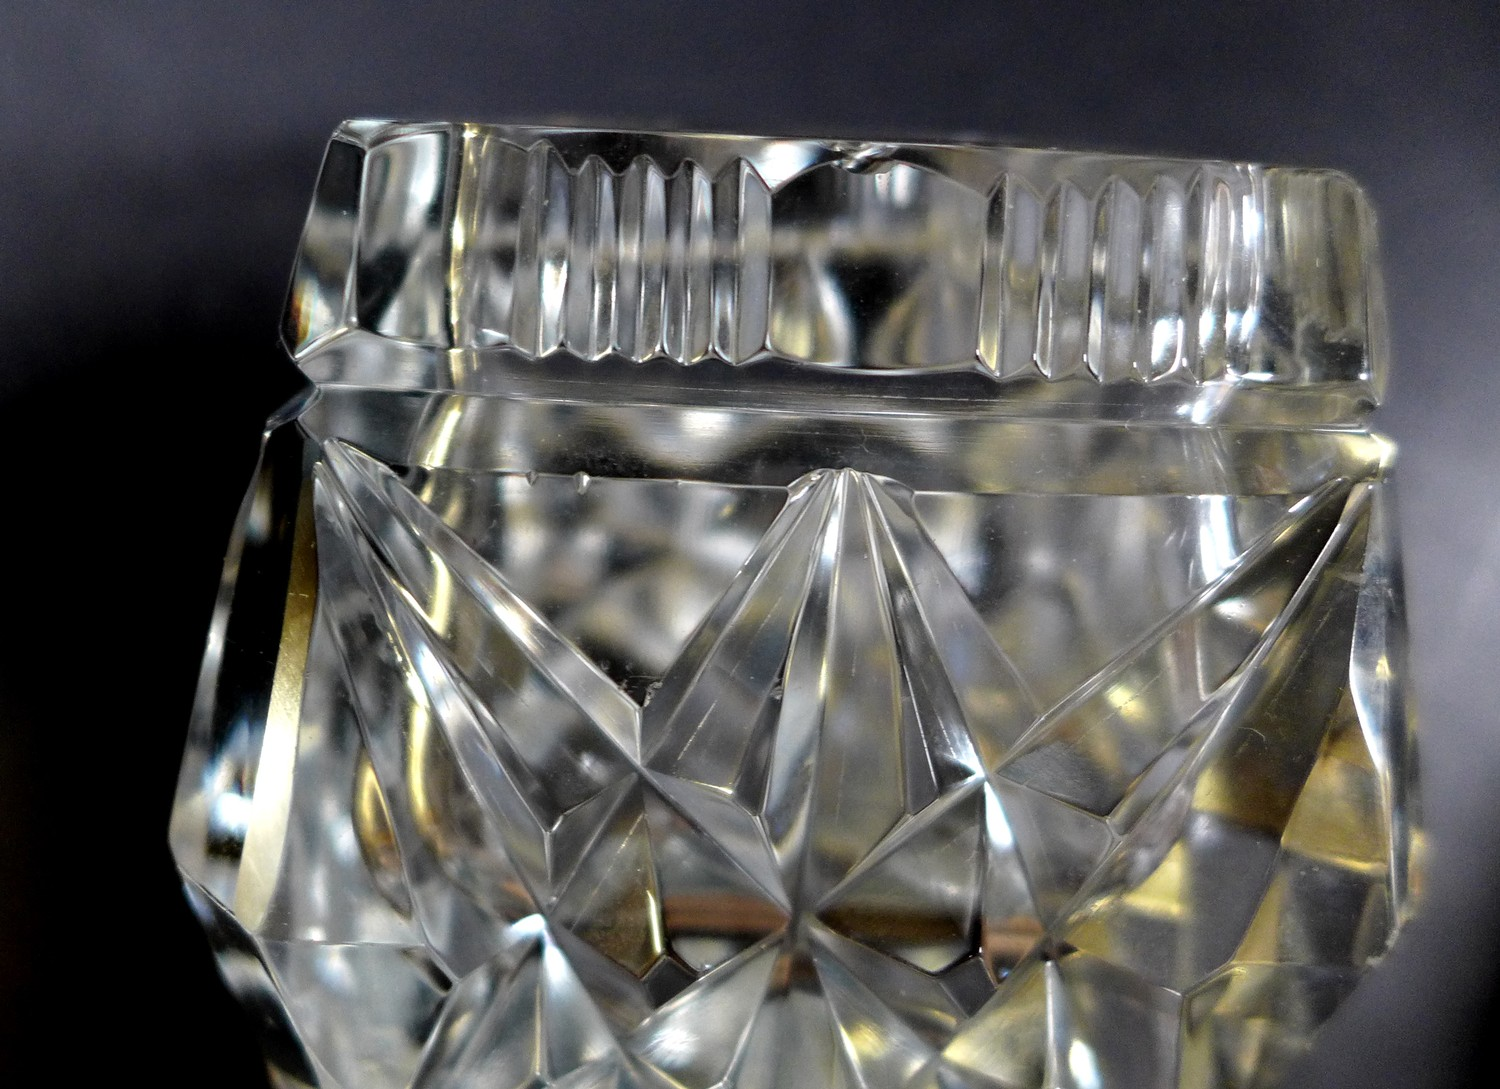 A collection of Waterford Crystal glass wares, including a shallow bowl, 26.5 by 7cm, pedestal bowl, - Image 4 of 12